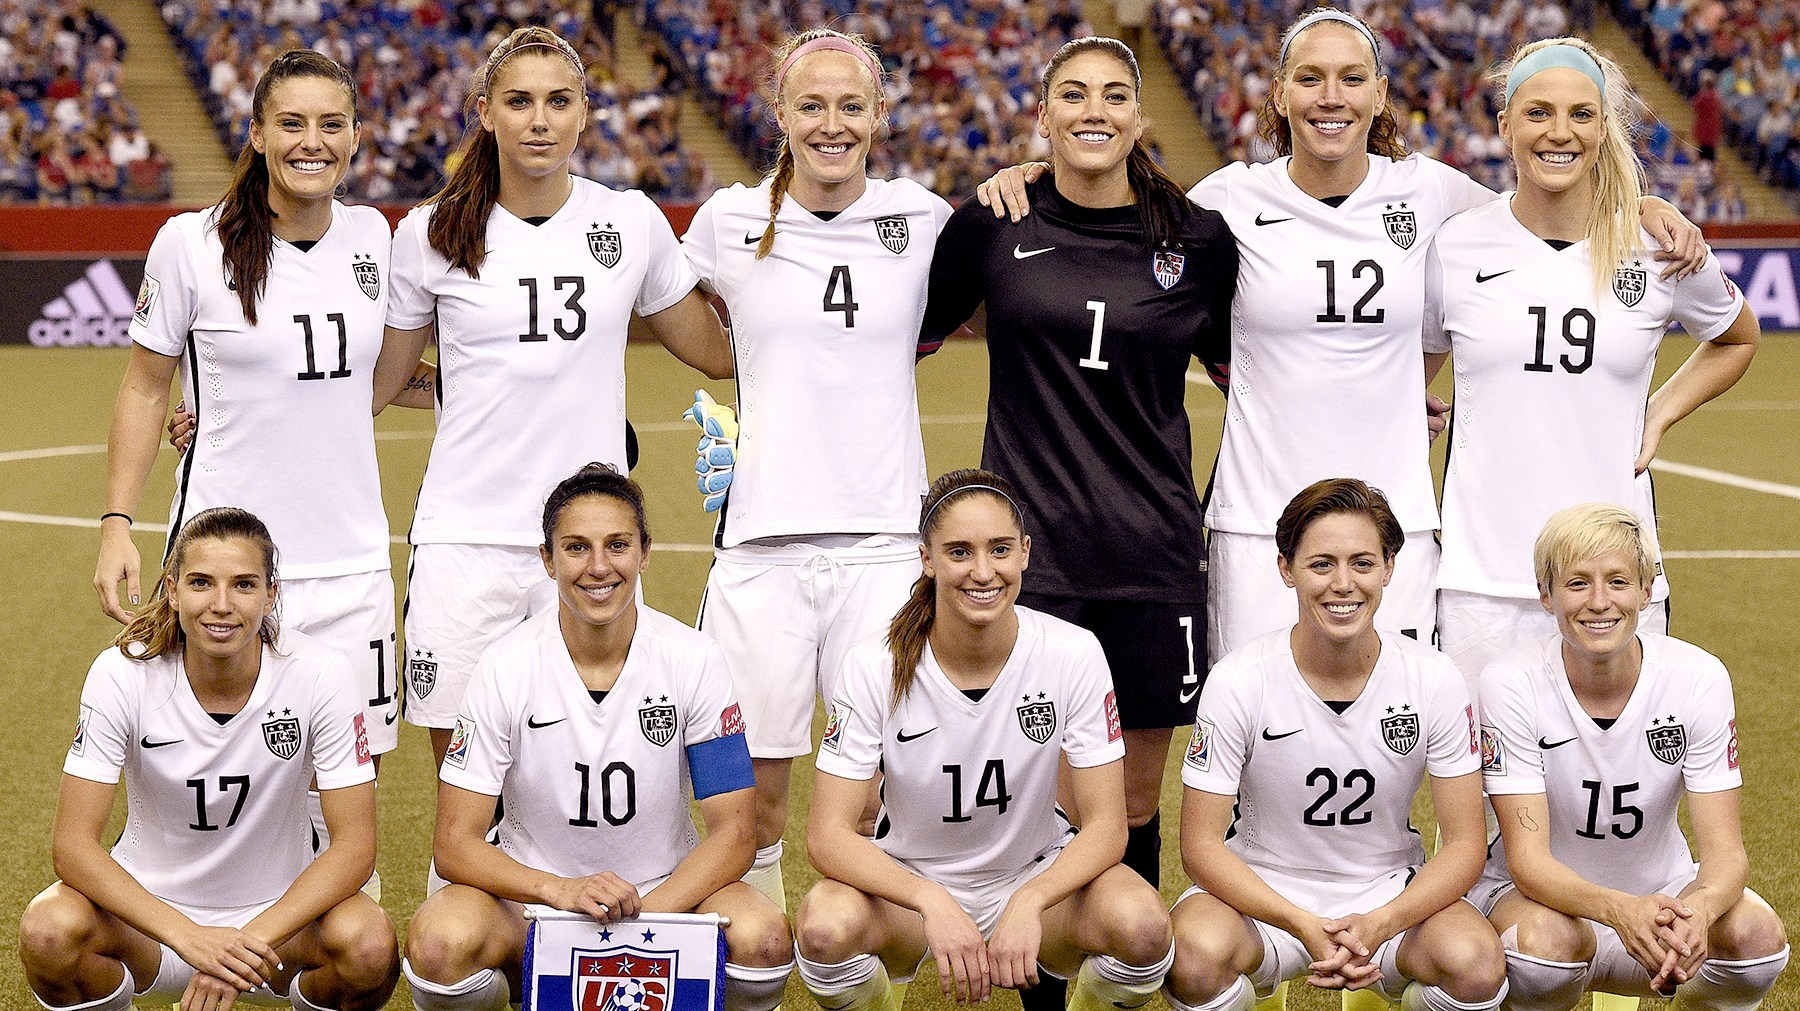 Members of the US Women's National Soccer Team pose during the 2015 FIFA Women's World Cup